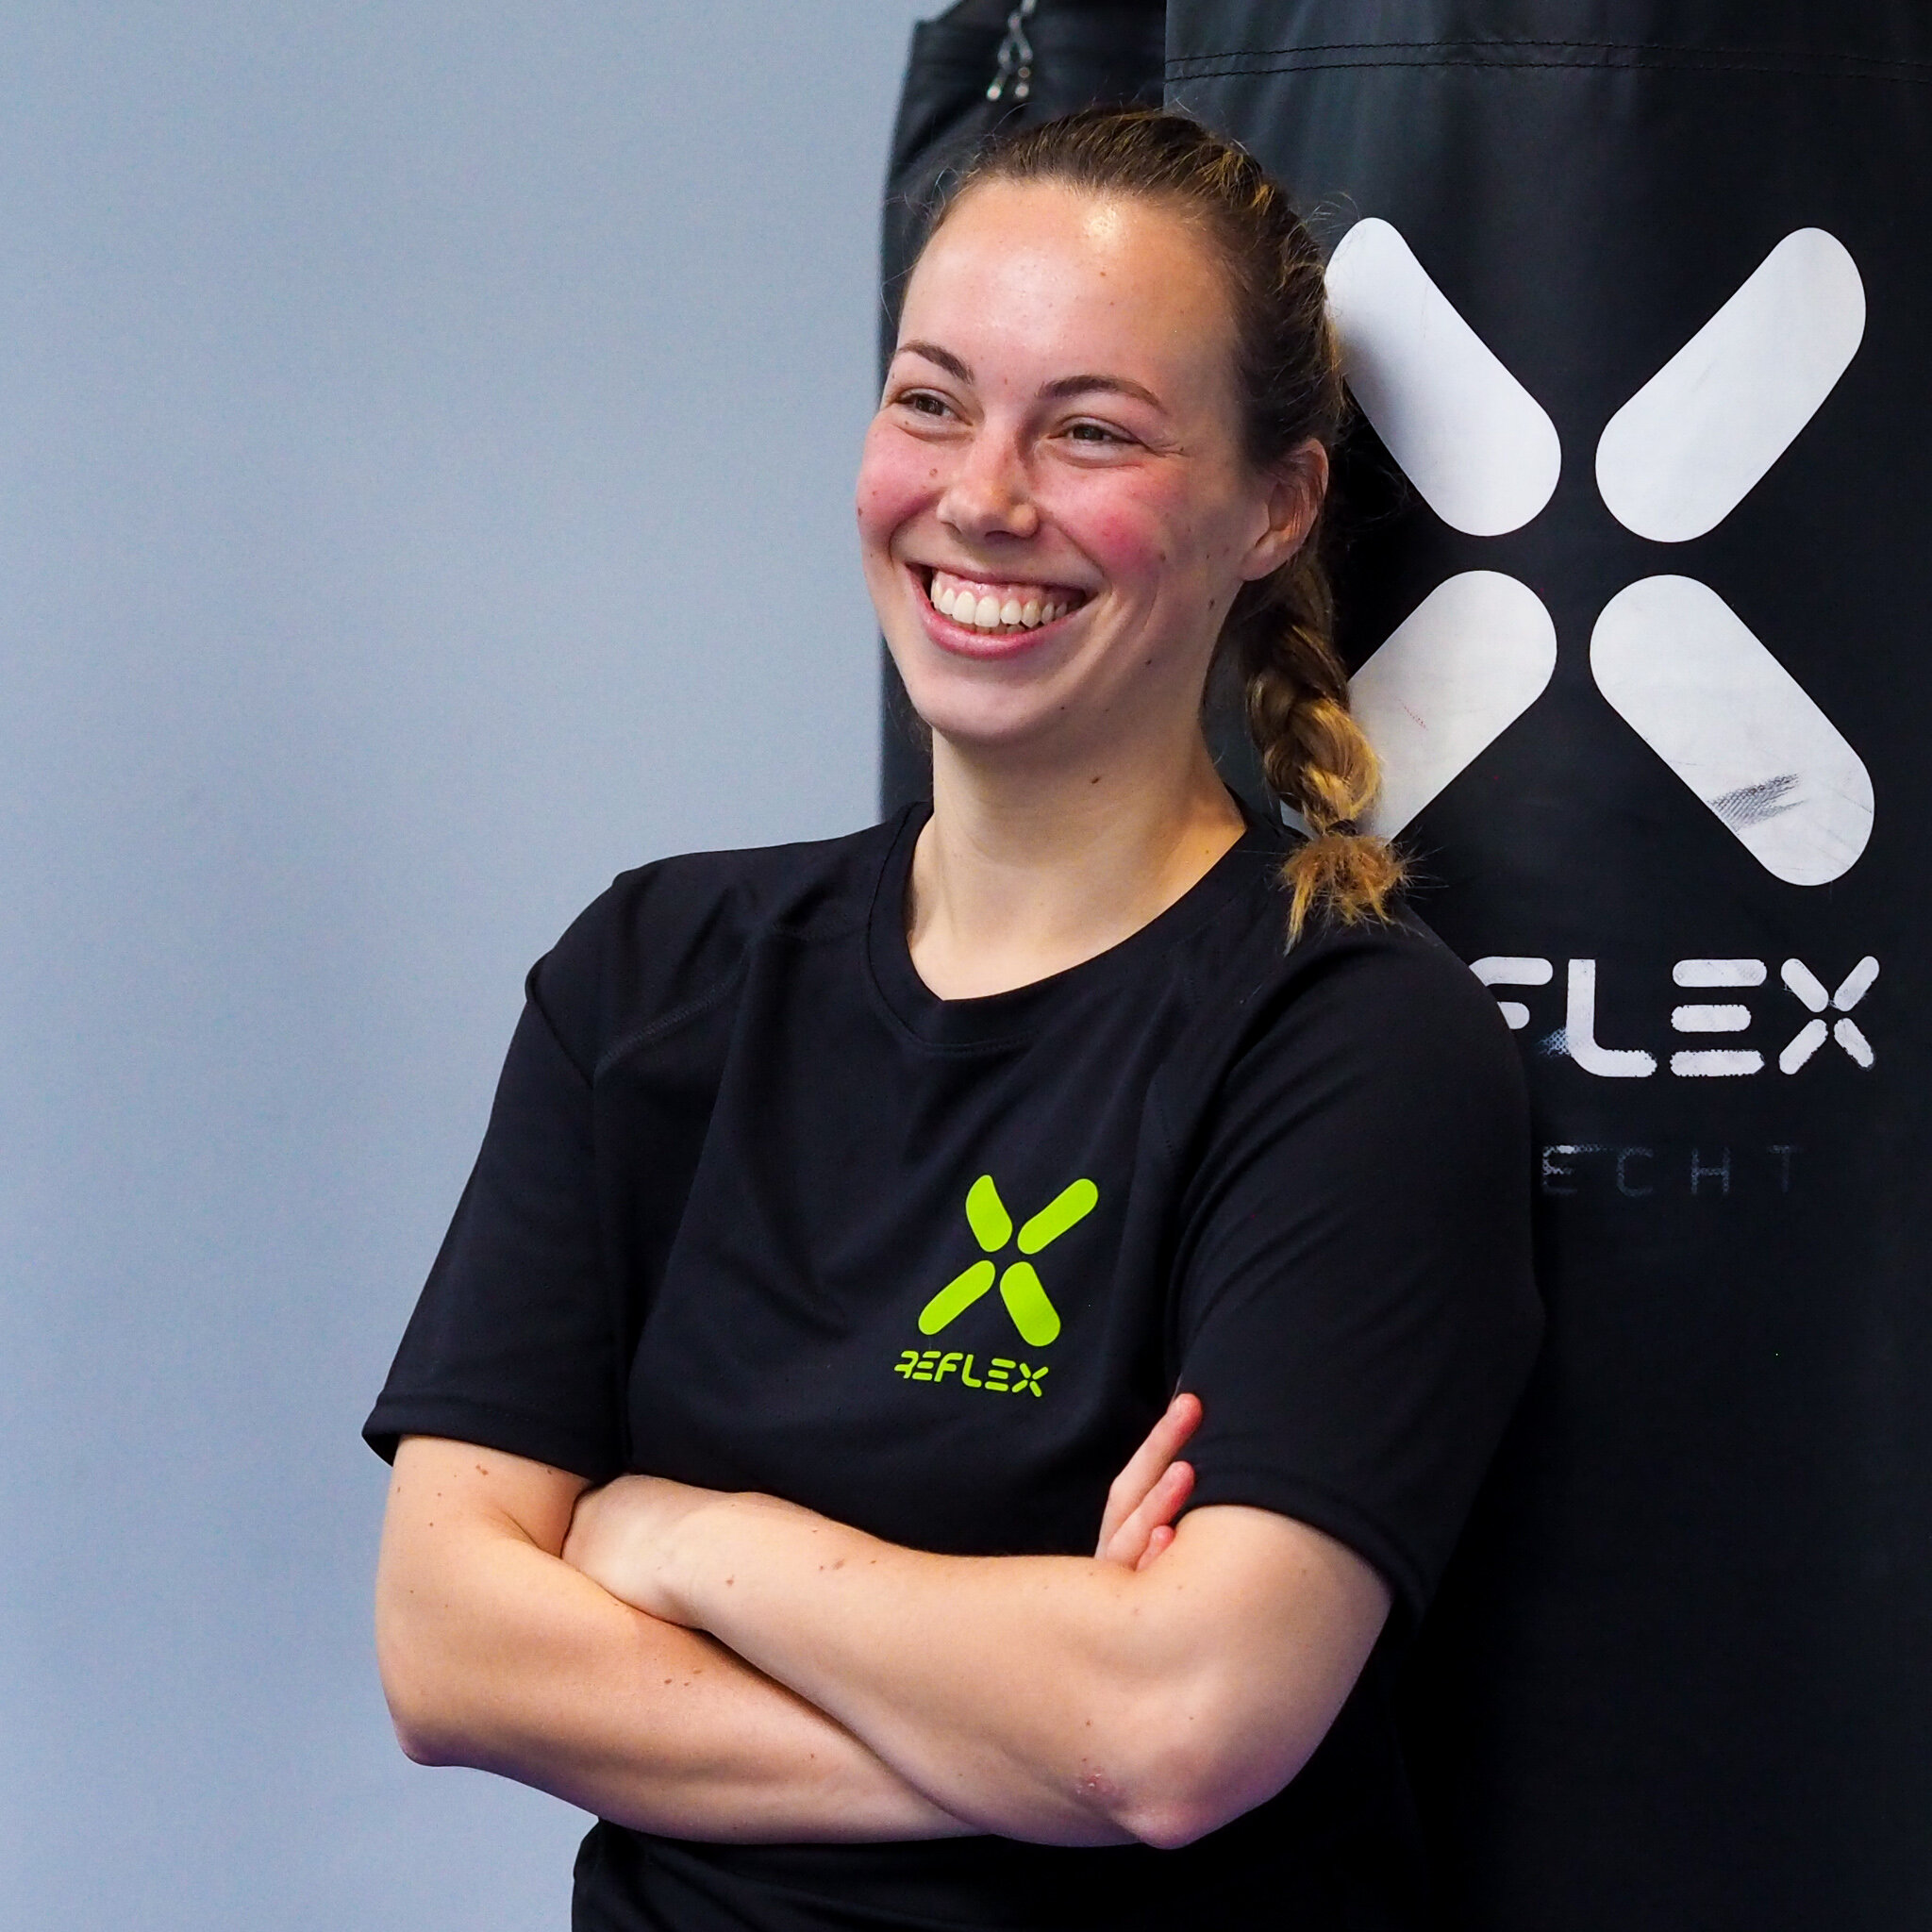 Tara van den Berg - Trainer StrikeFit